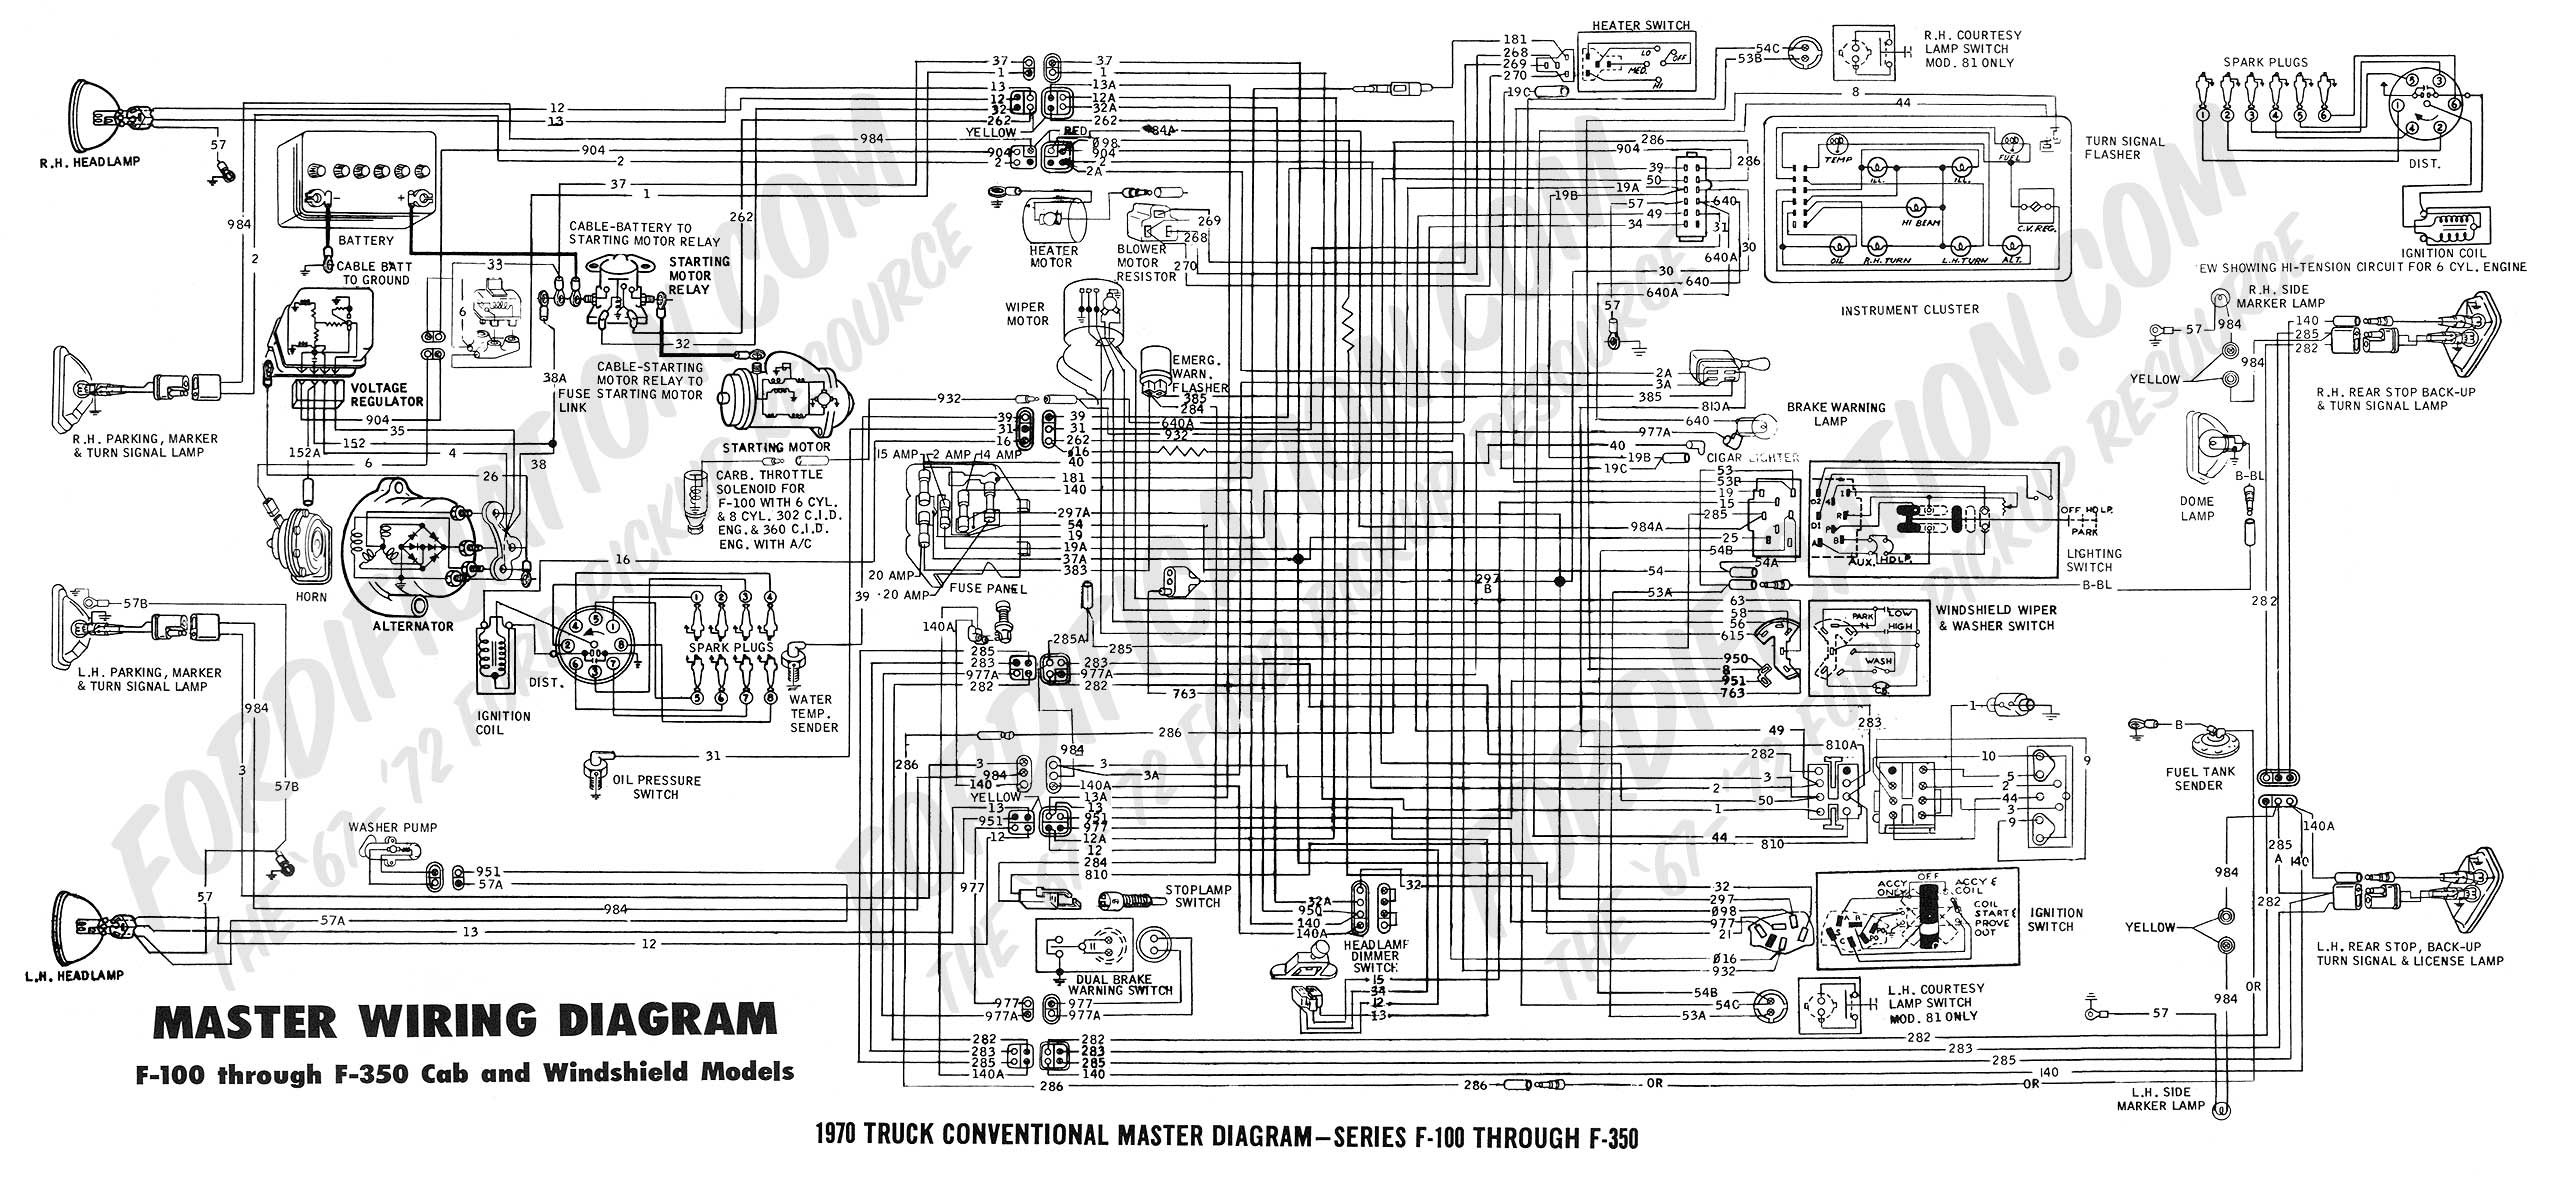 [SCHEMATICS_49CH]  Ford Truck Technical Drawings and Schematics - Section H - Wiring Diagrams | 1988 Ford E150 Wiring Diagram |  | FORDification.com